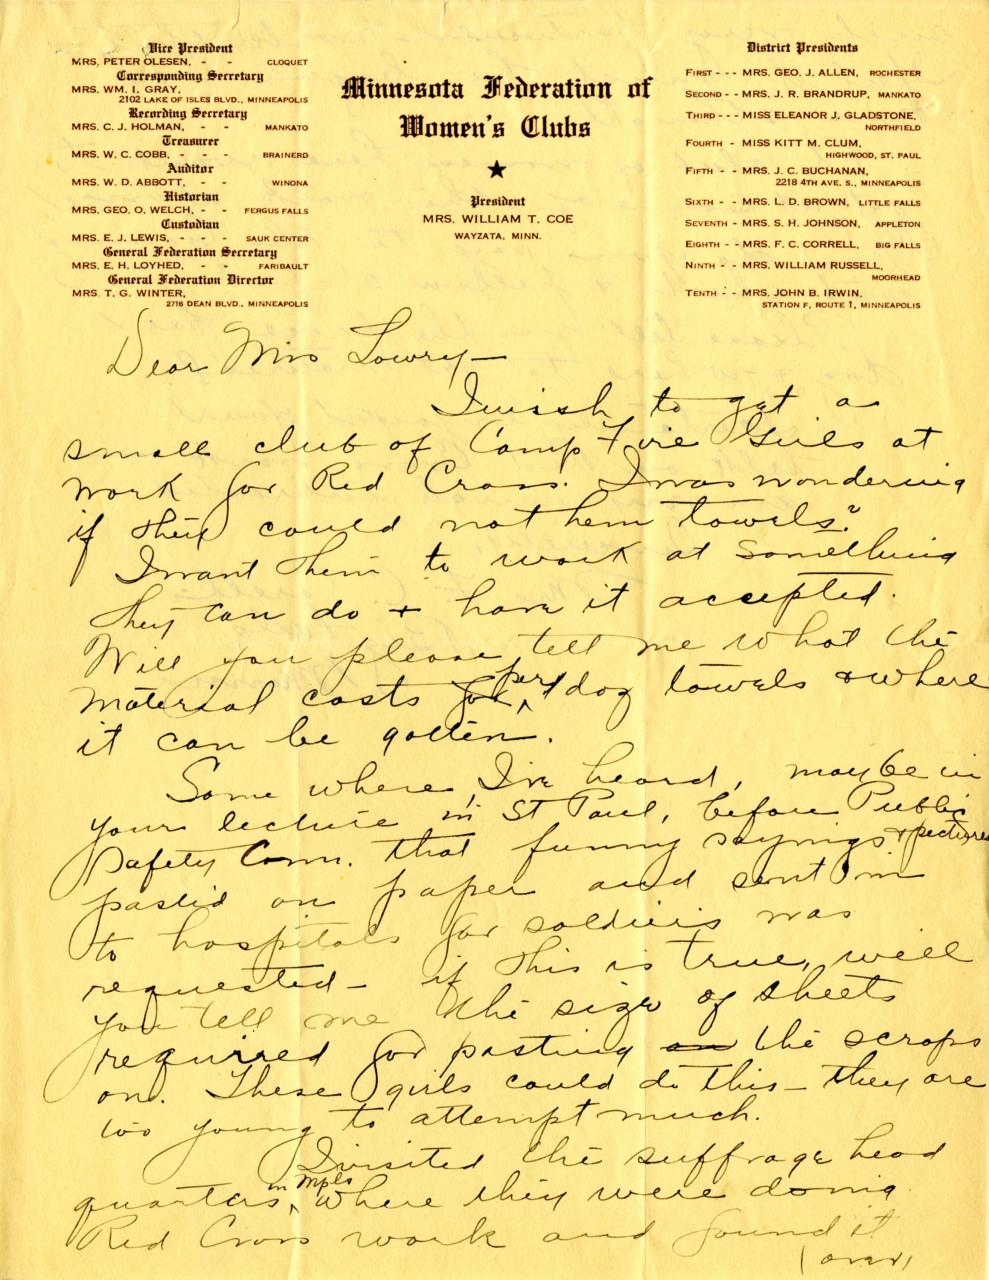 Front of letter